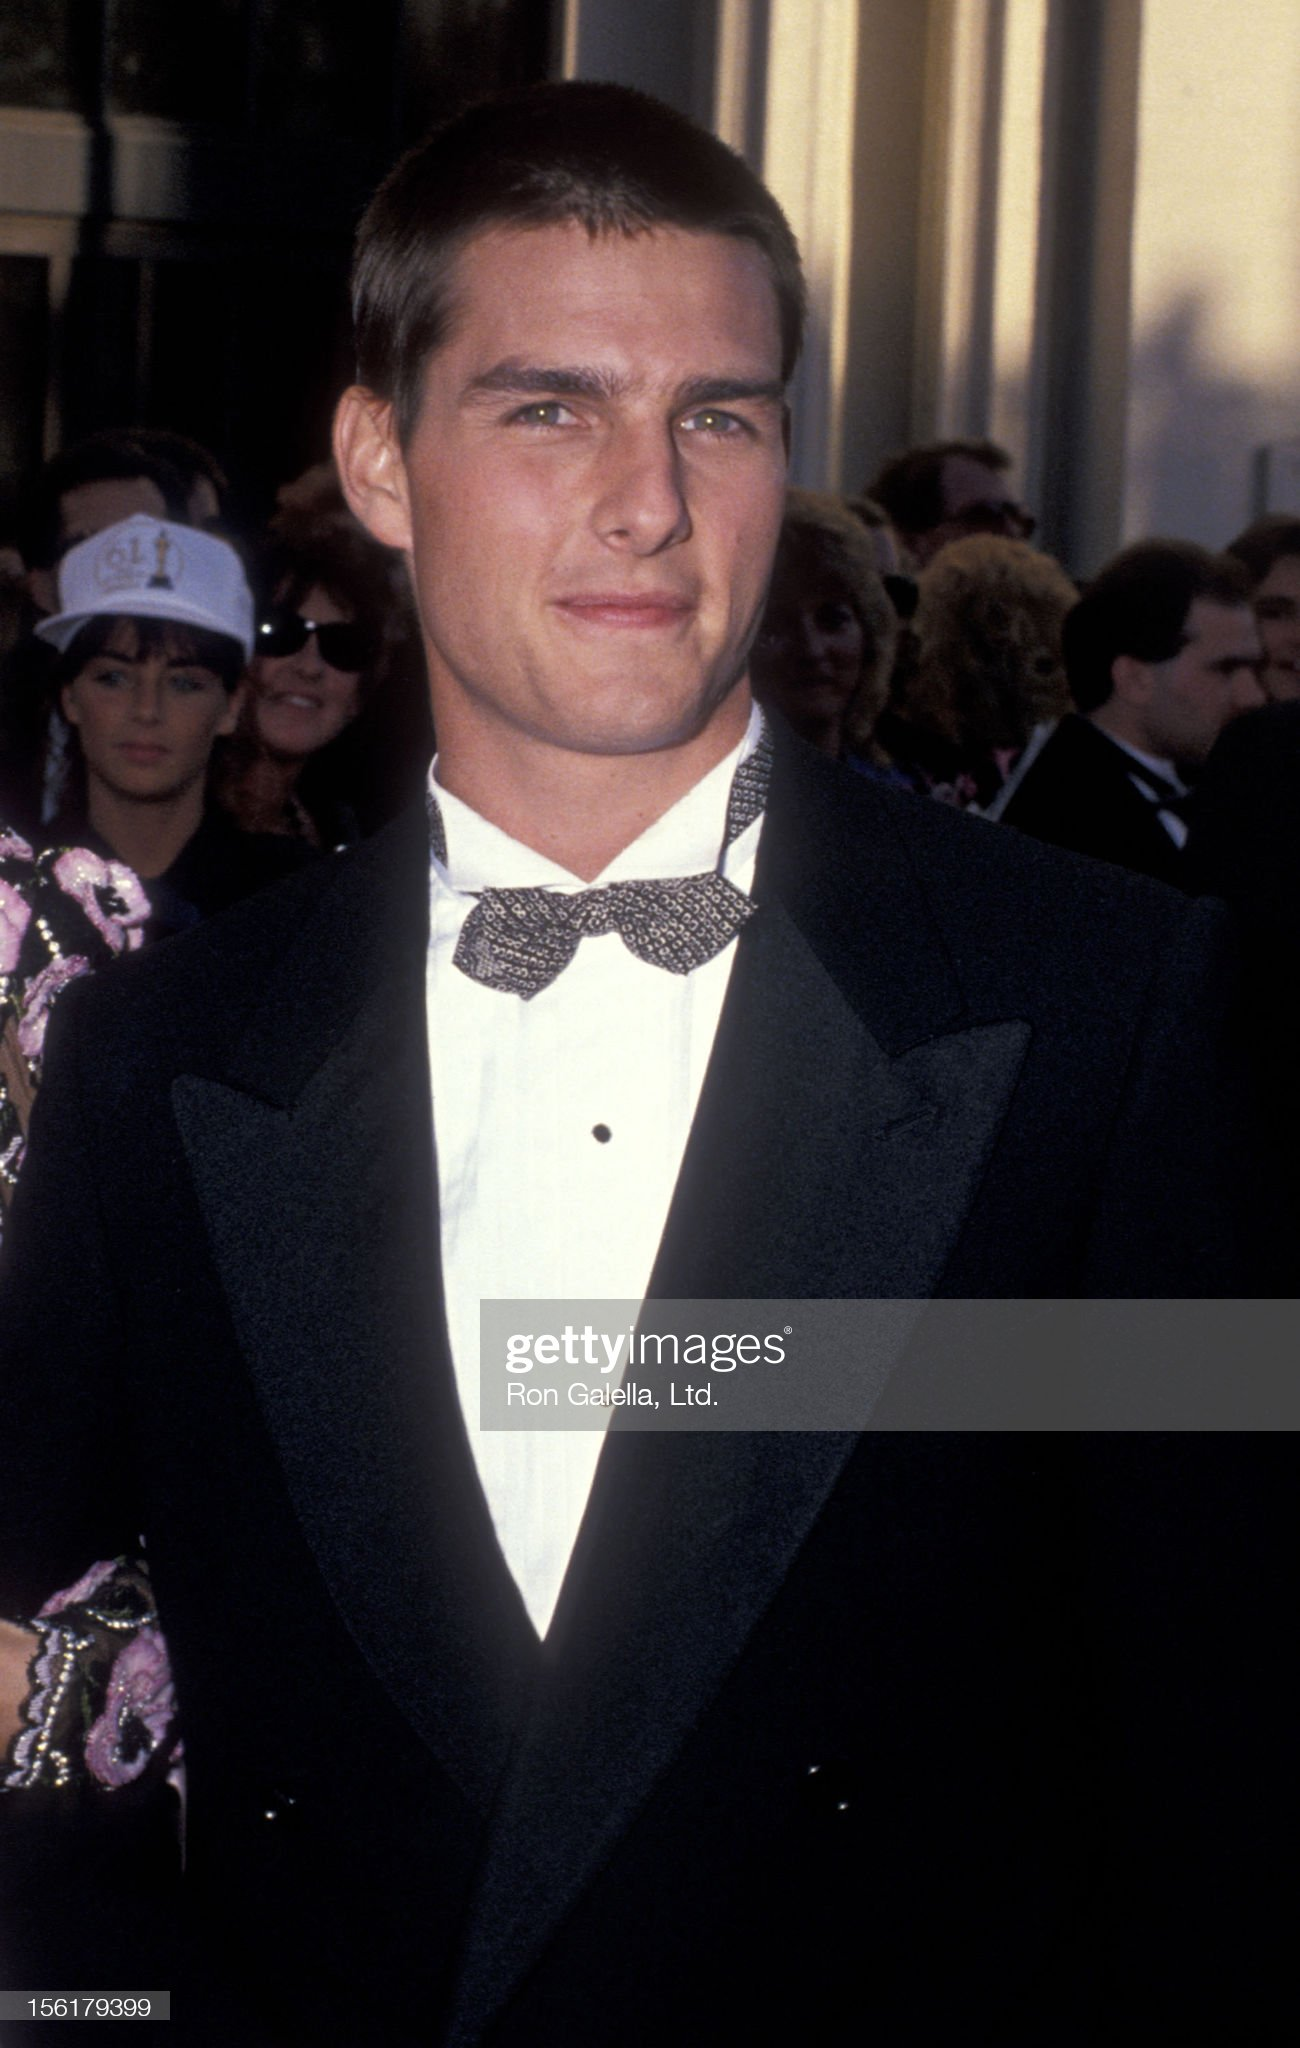 Tom Cruise (Galería de fotos) Actor-tom-cruise-attends-the-61st-annual-academy-awards-on-march-29-picture-id156179399?s=2048x2048